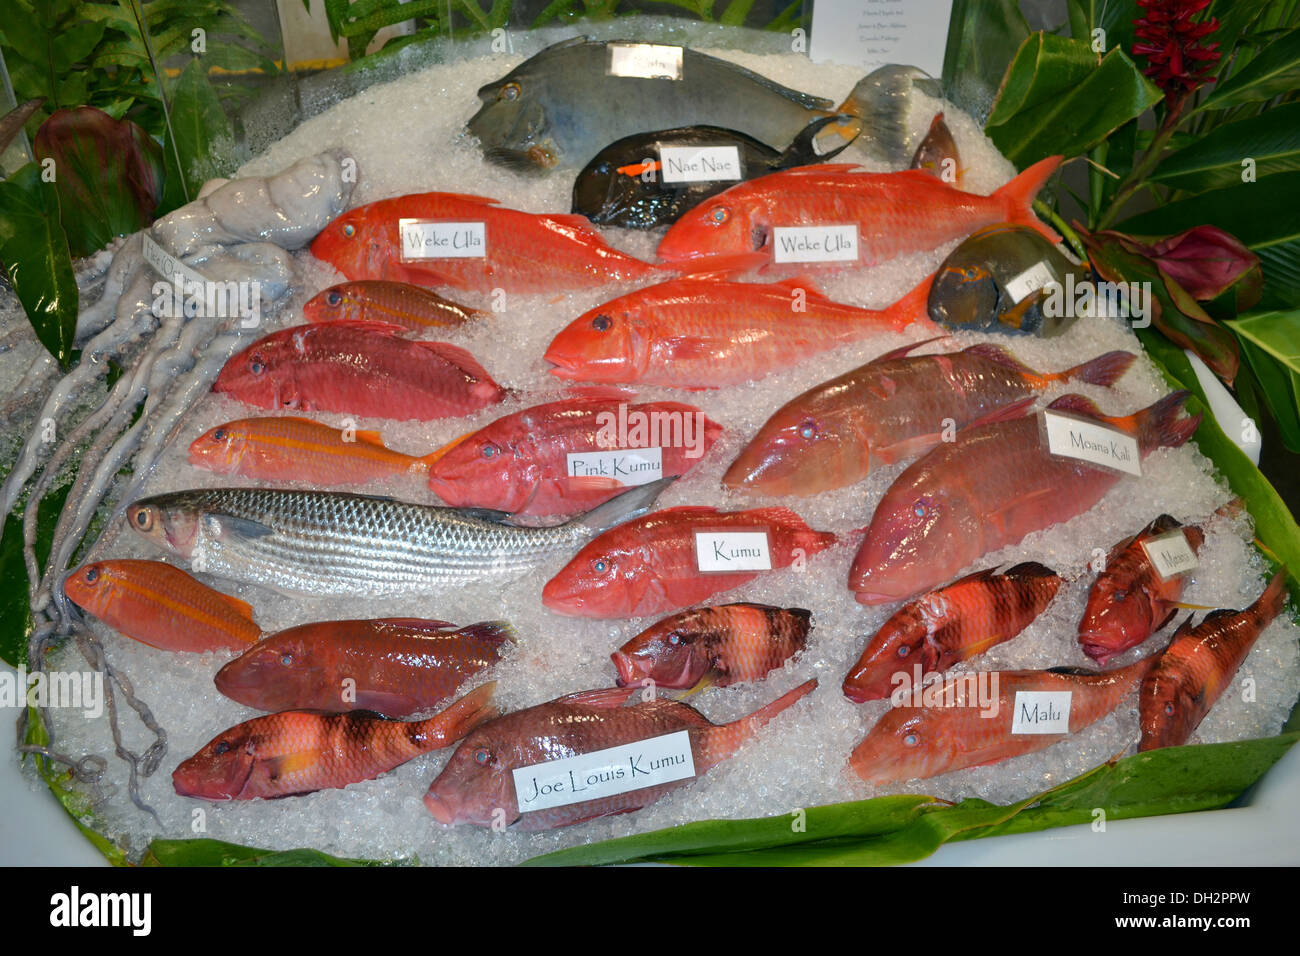 Fishes For Sale Stock Photos & Fishes For Sale Stock Images - Alamy